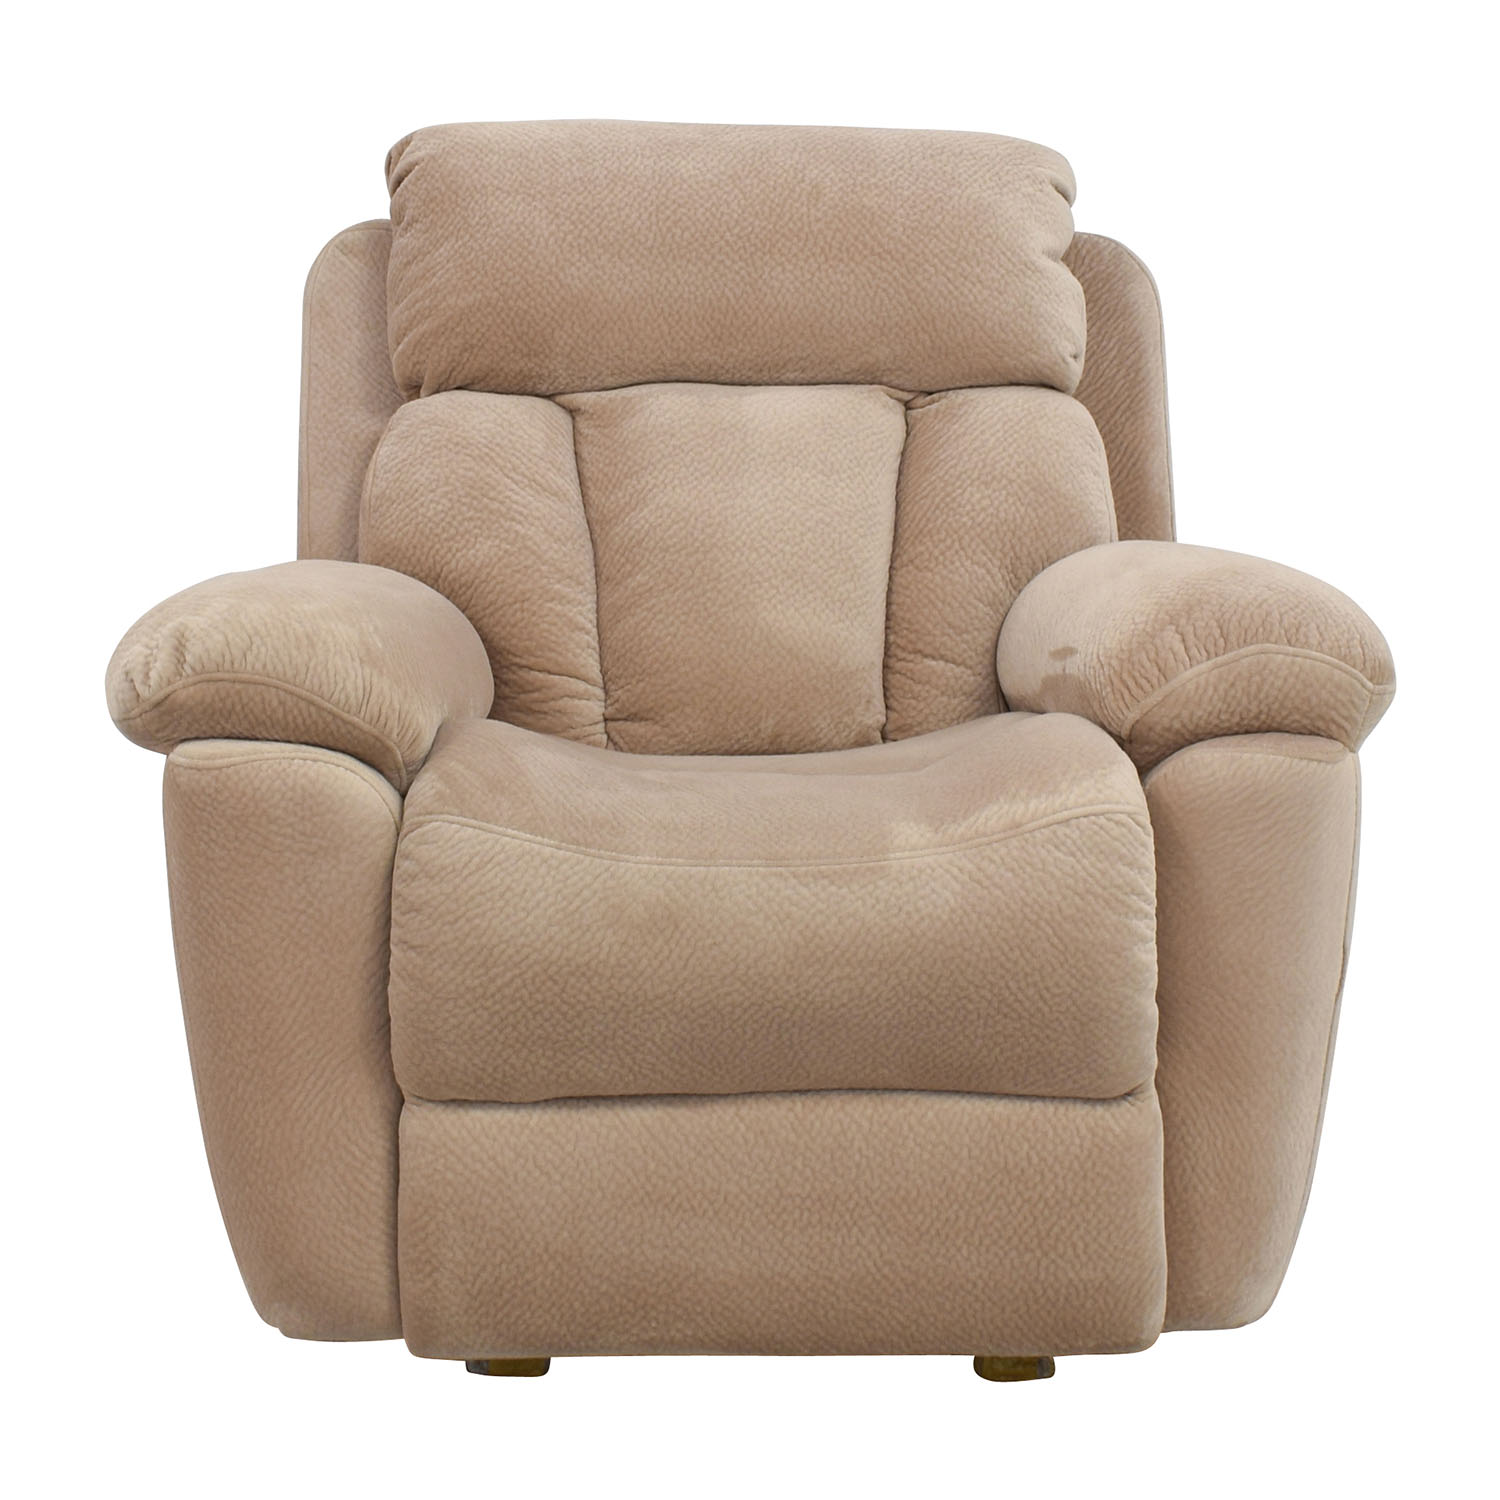 Jennifer Furniture Jennifer Furniture Beige Microfiber Recliner Chair coupon